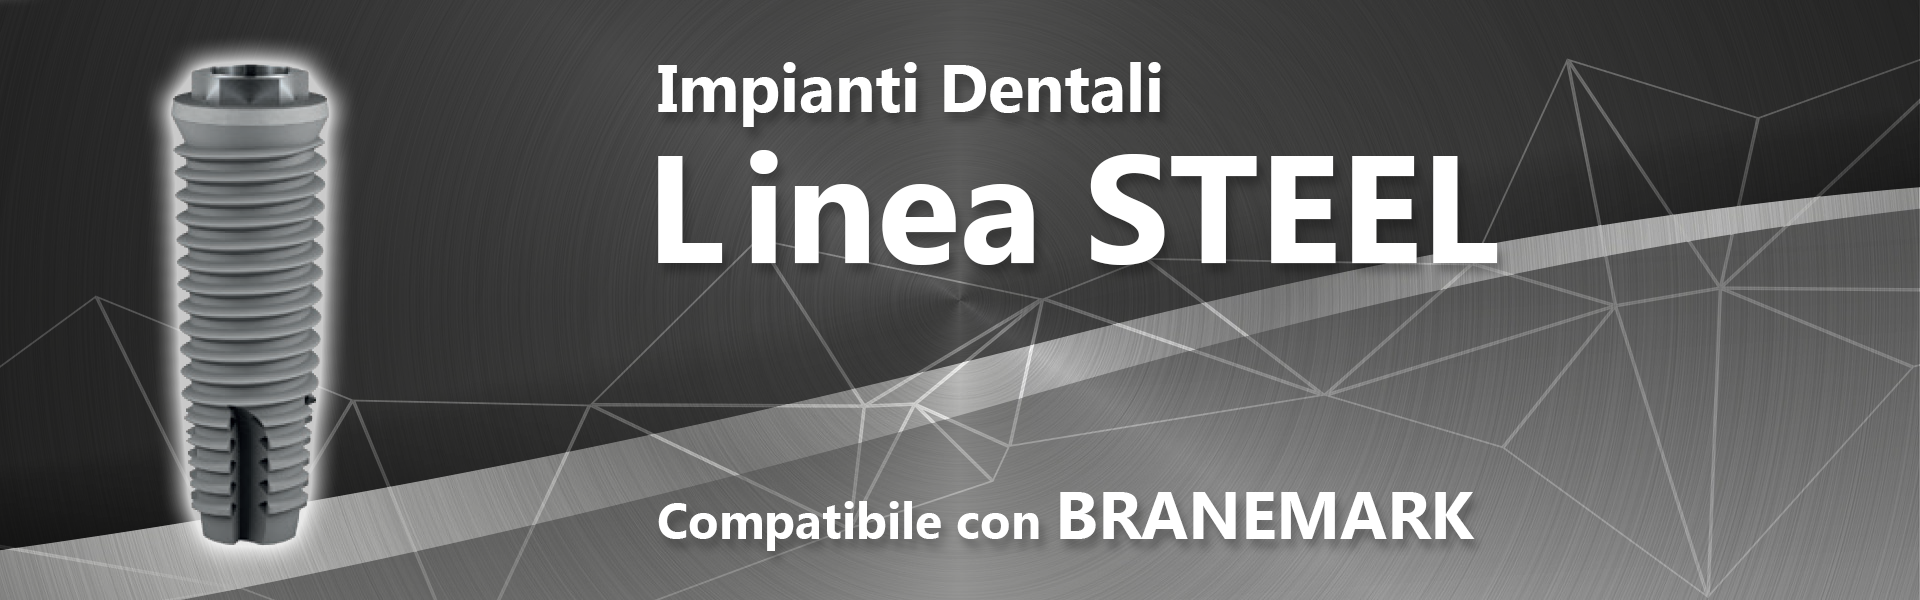 Linea STEEL (compatibile con BRANEMARK)